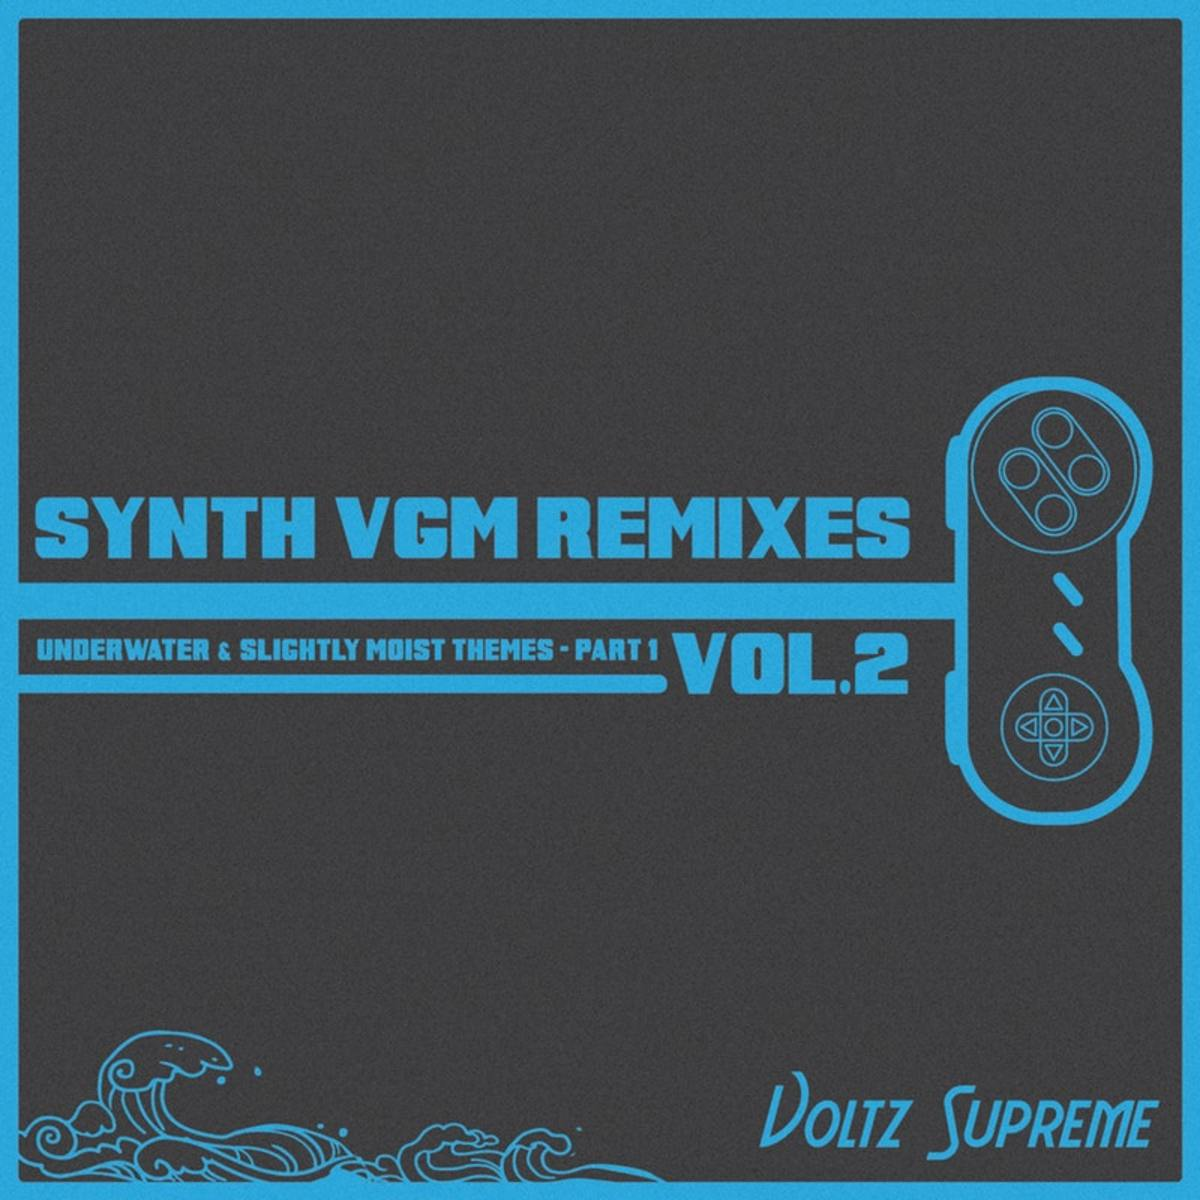 """Synth Album Review: """"Voltz Supreme,  Synth VGM Remixes Vol.3—Underwater & Slightly Moist Themes Part 1"""""""